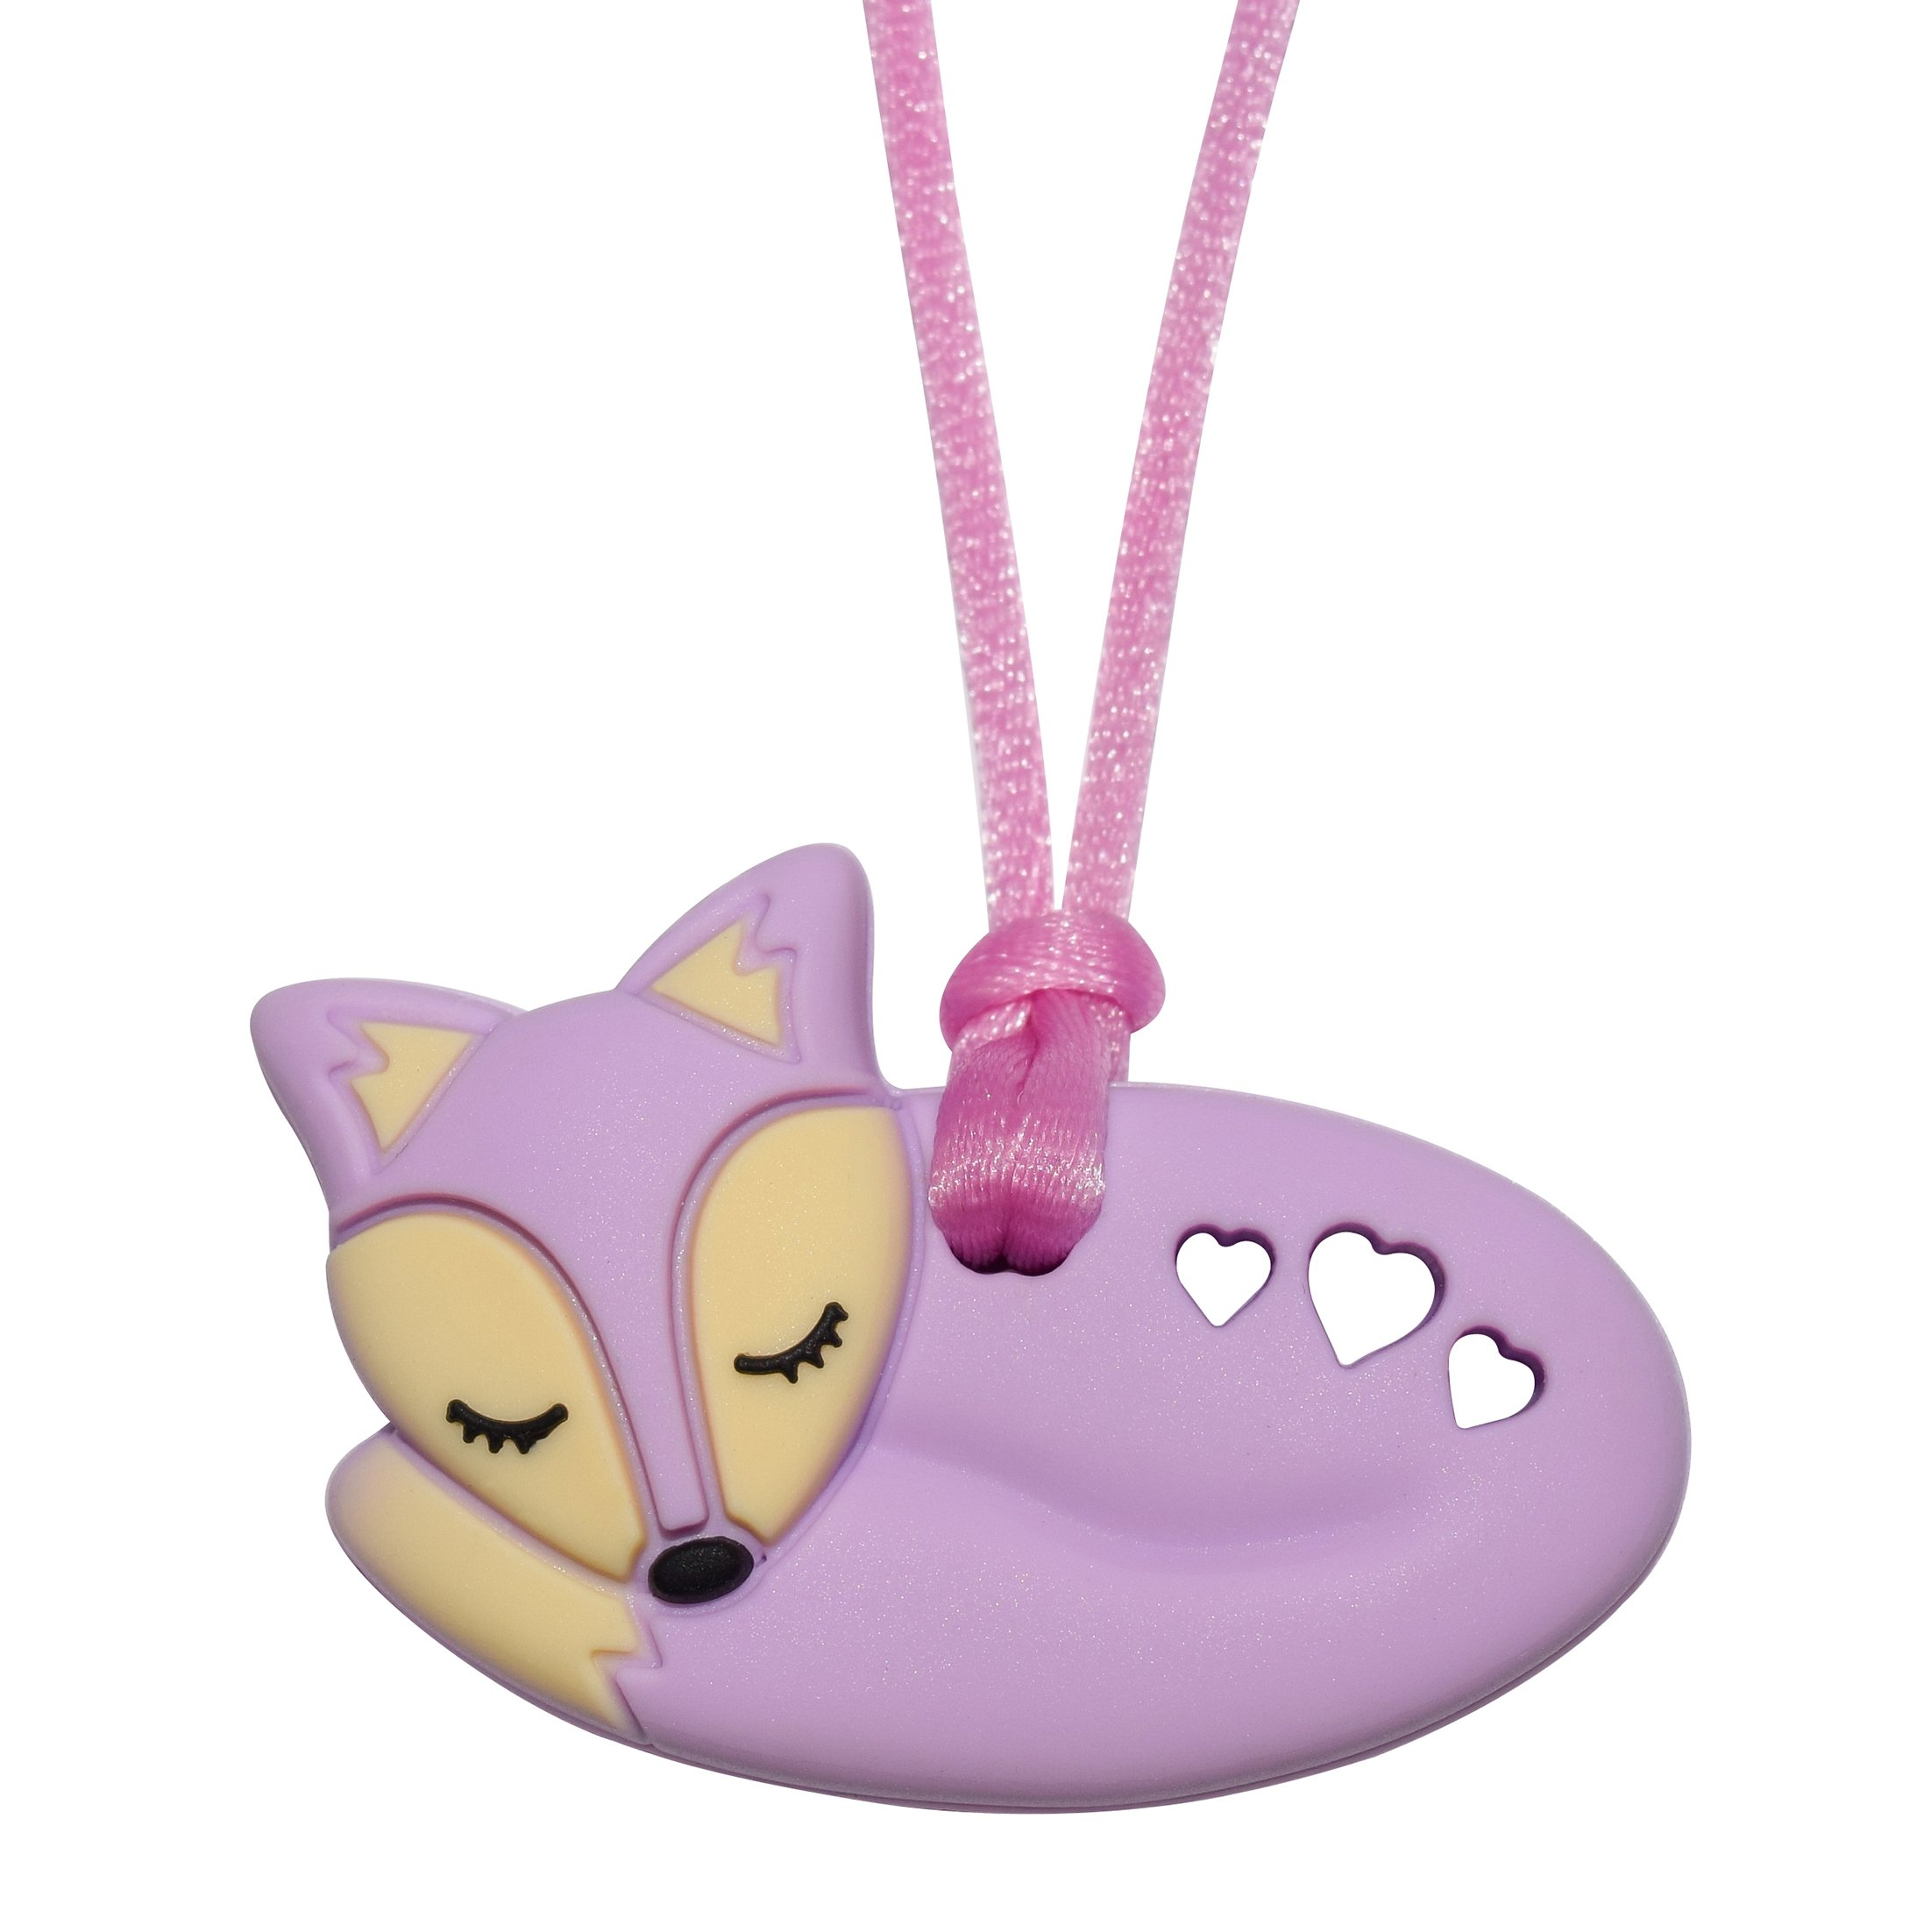 Foxy Fox Necklace (Purple) - Sensory Oral Motor Aide Chewelry Necklace - Chewy Jewelry for Sensory-Focused Kids with Autism or Special Needs - Calms Kids and Reduces Biting/Chewing/Fidgeting by Munchables Chewelry